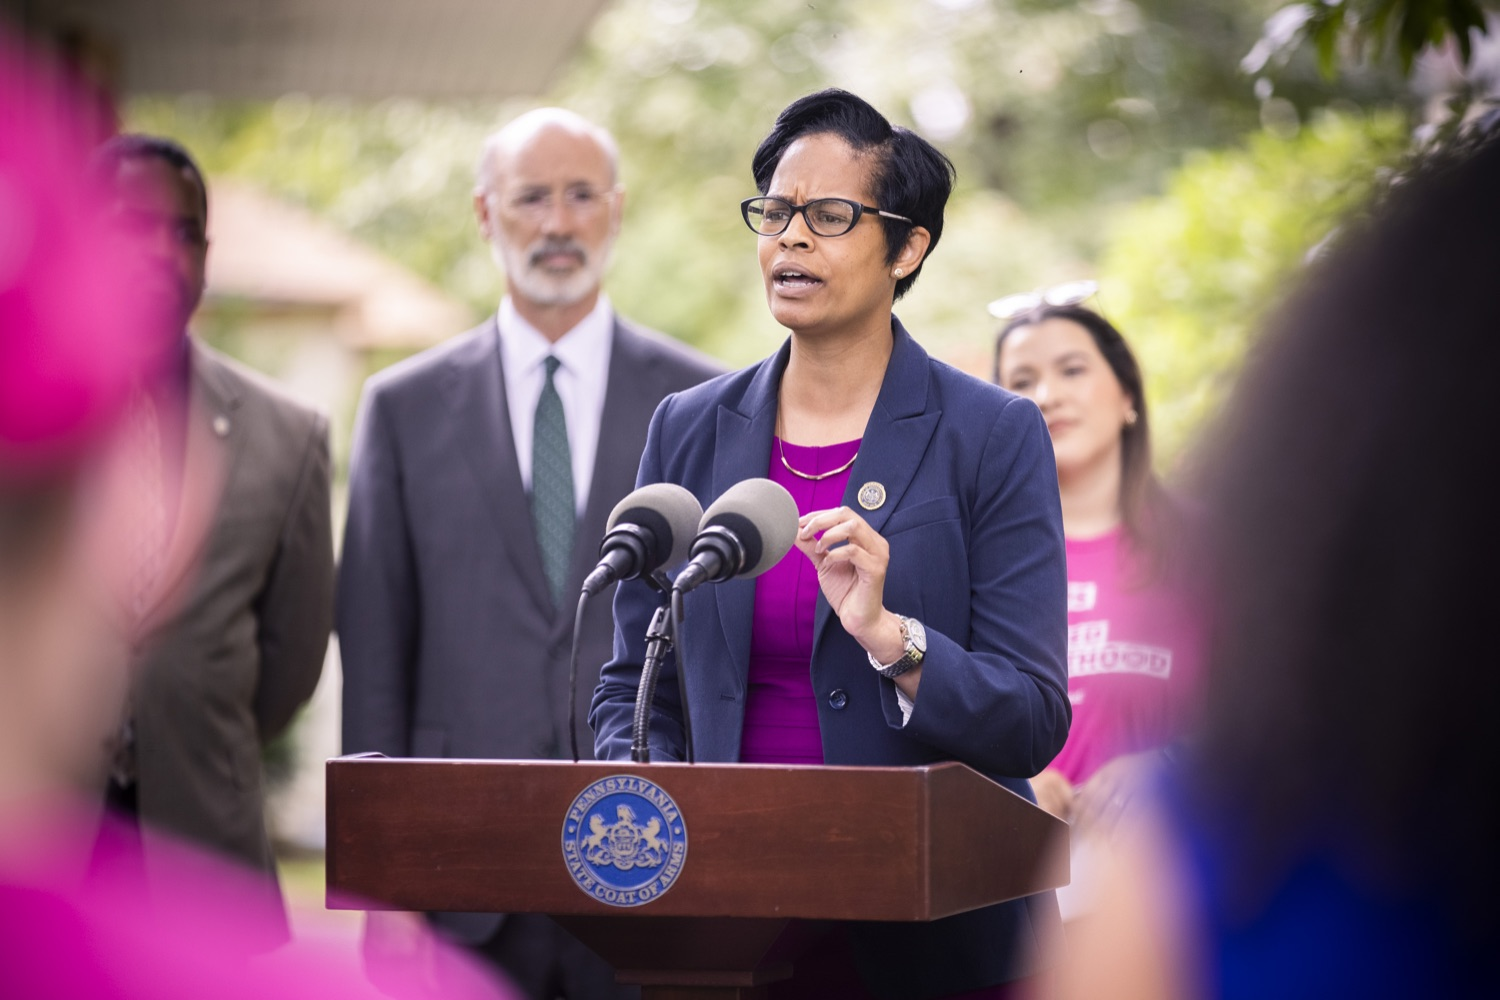 """<a href=""""https://filesource.wostreaming.net/commonwealthofpa/photo/18819_gov_reprodRights_dz_003.jpg"""" target=""""_blank"""">⇣Download Photo<br></a>Pennsylvania State Representative Morgan Cephas speaking with the press.  Governor Wolf will discuss proposed anti-choice legislation that is moving through the House of Representatives and reaffirm that he will veto this damaging legislation.  JUNE 10, 2021 - PHILADELPHIA, PA"""